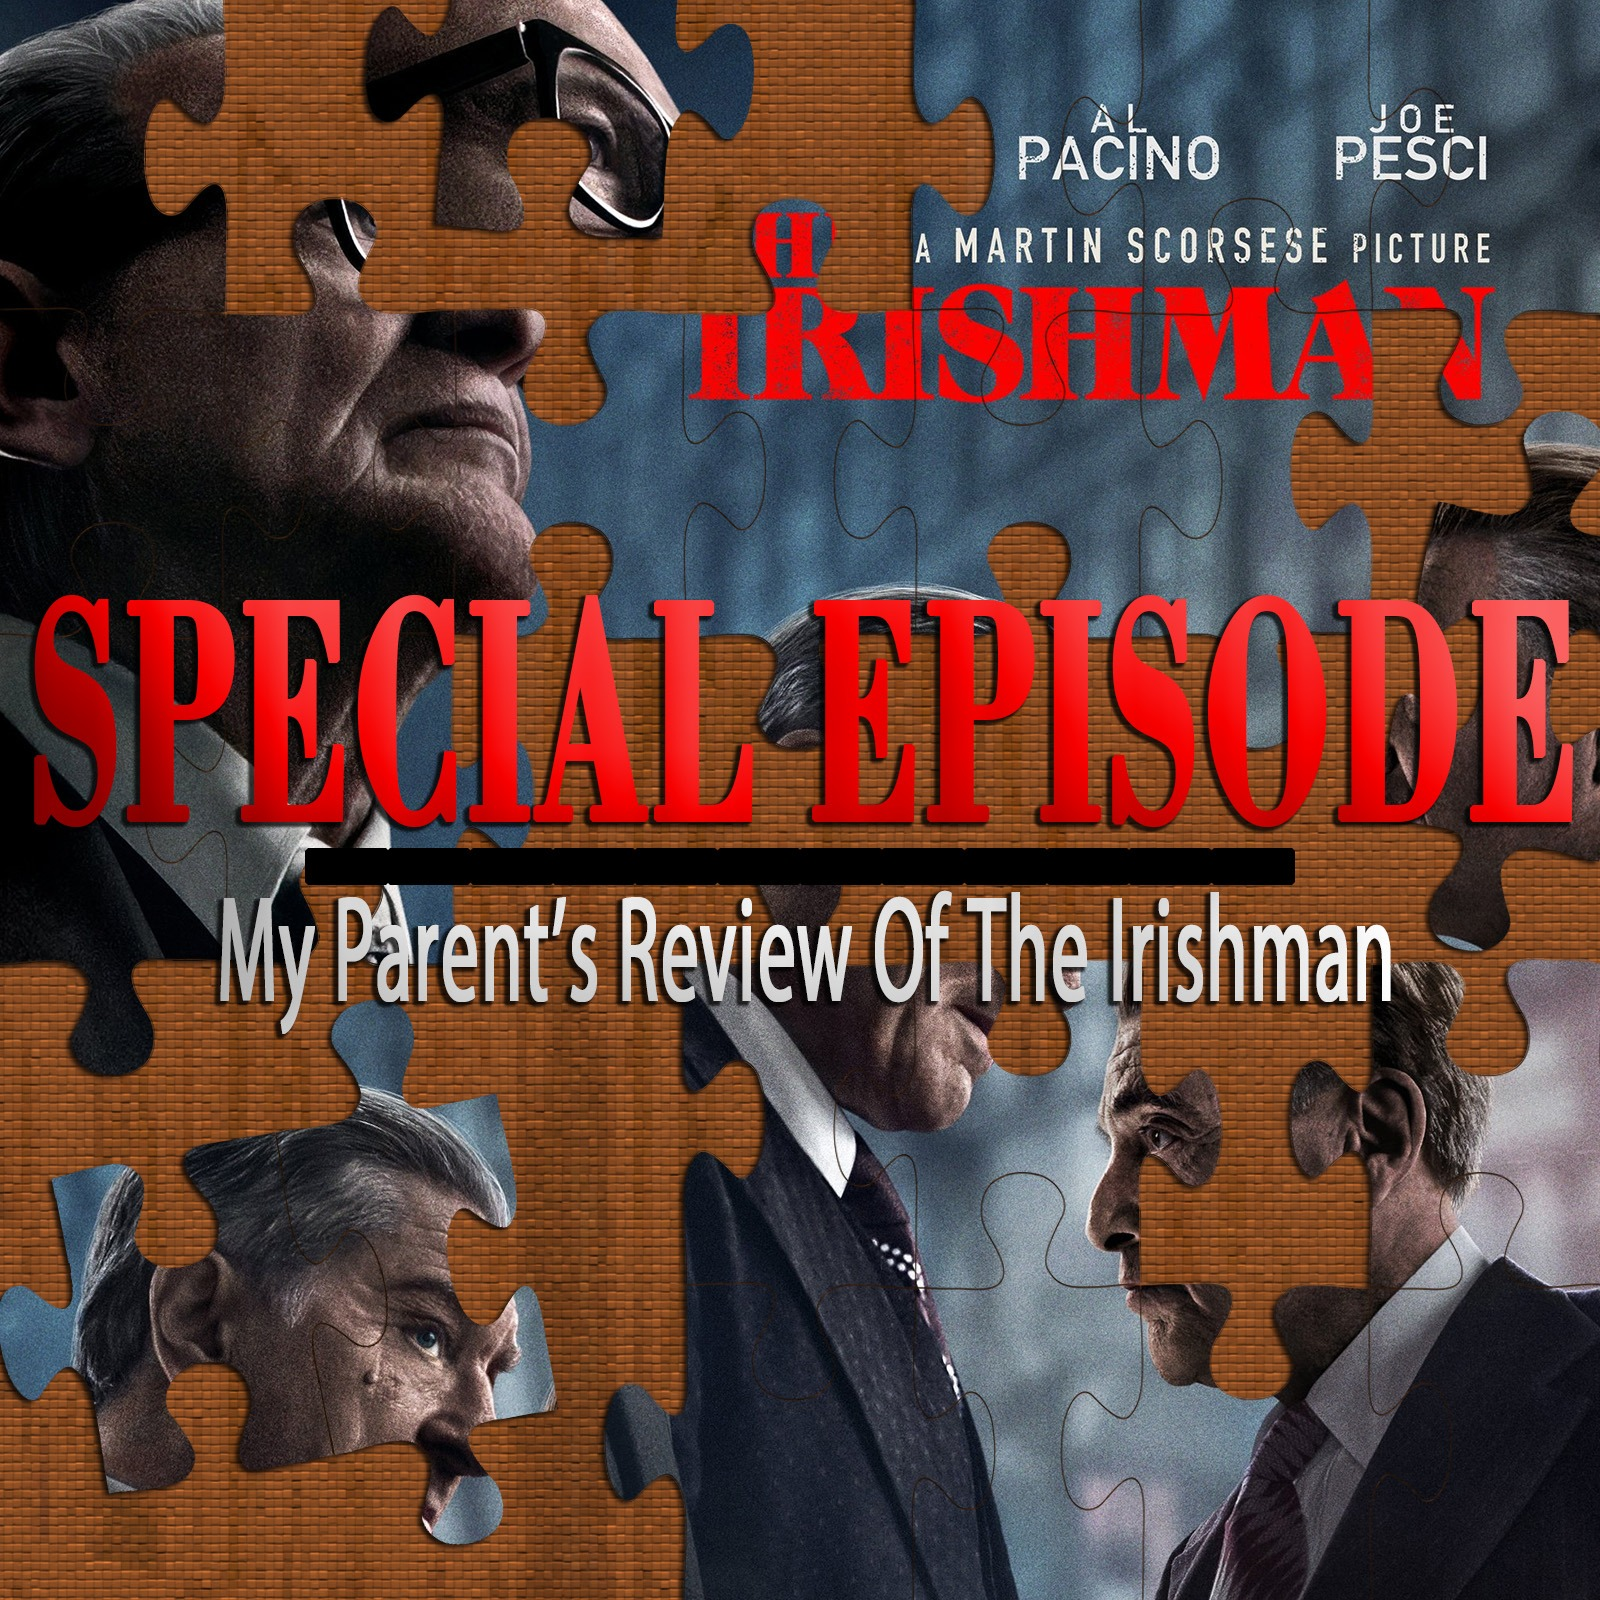 The Irishman (My Parent's Review Special Episode)